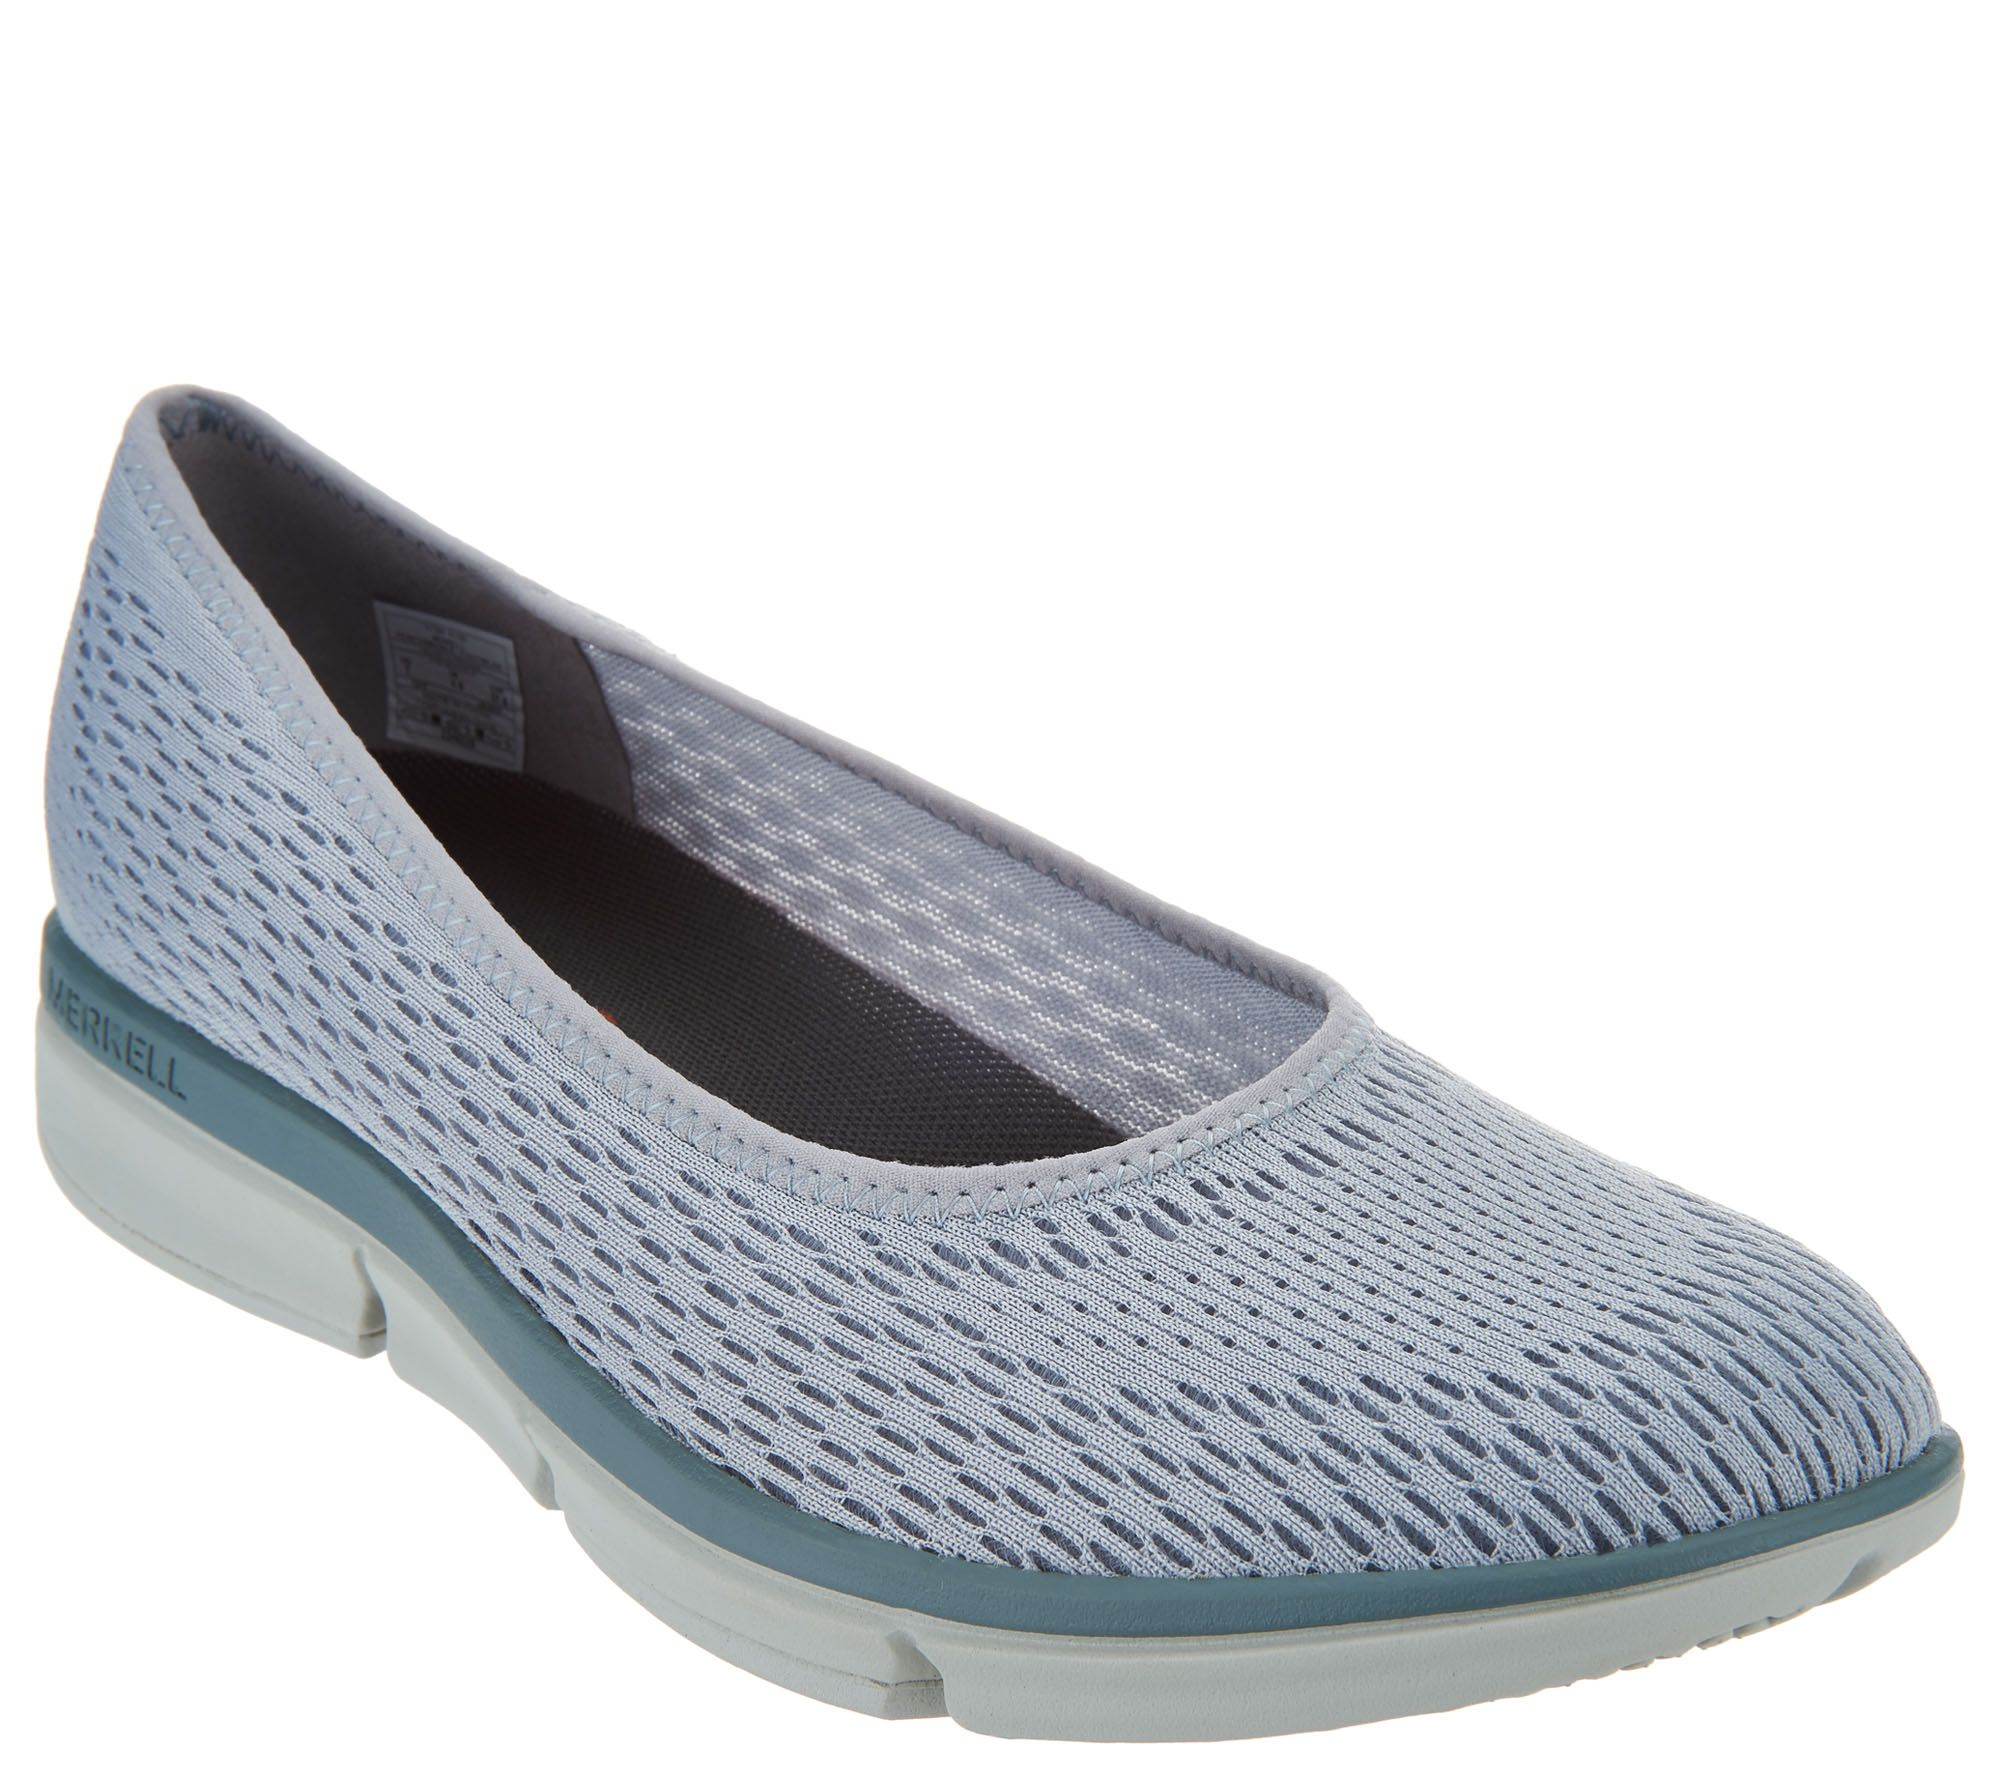 get cheap beautiful in colour separation shoes Merrell Mesh Slip-on Shoes - Zoe Sojourn Ballet — QVC.com